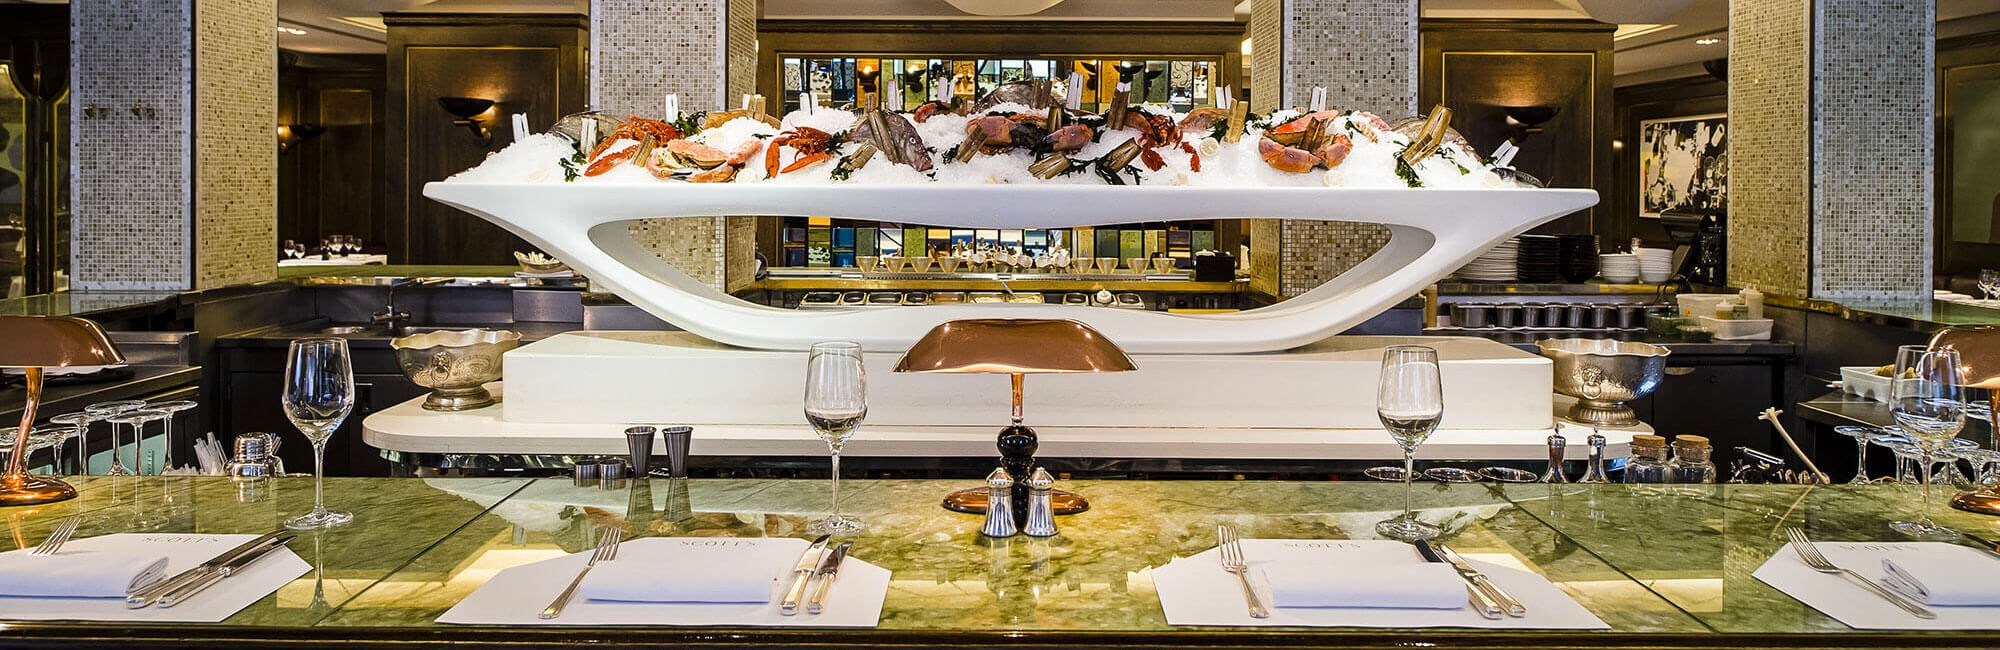 The Oyster and Champagne Bar at Scott's, Fish and Seafood restaurant in Mayfair